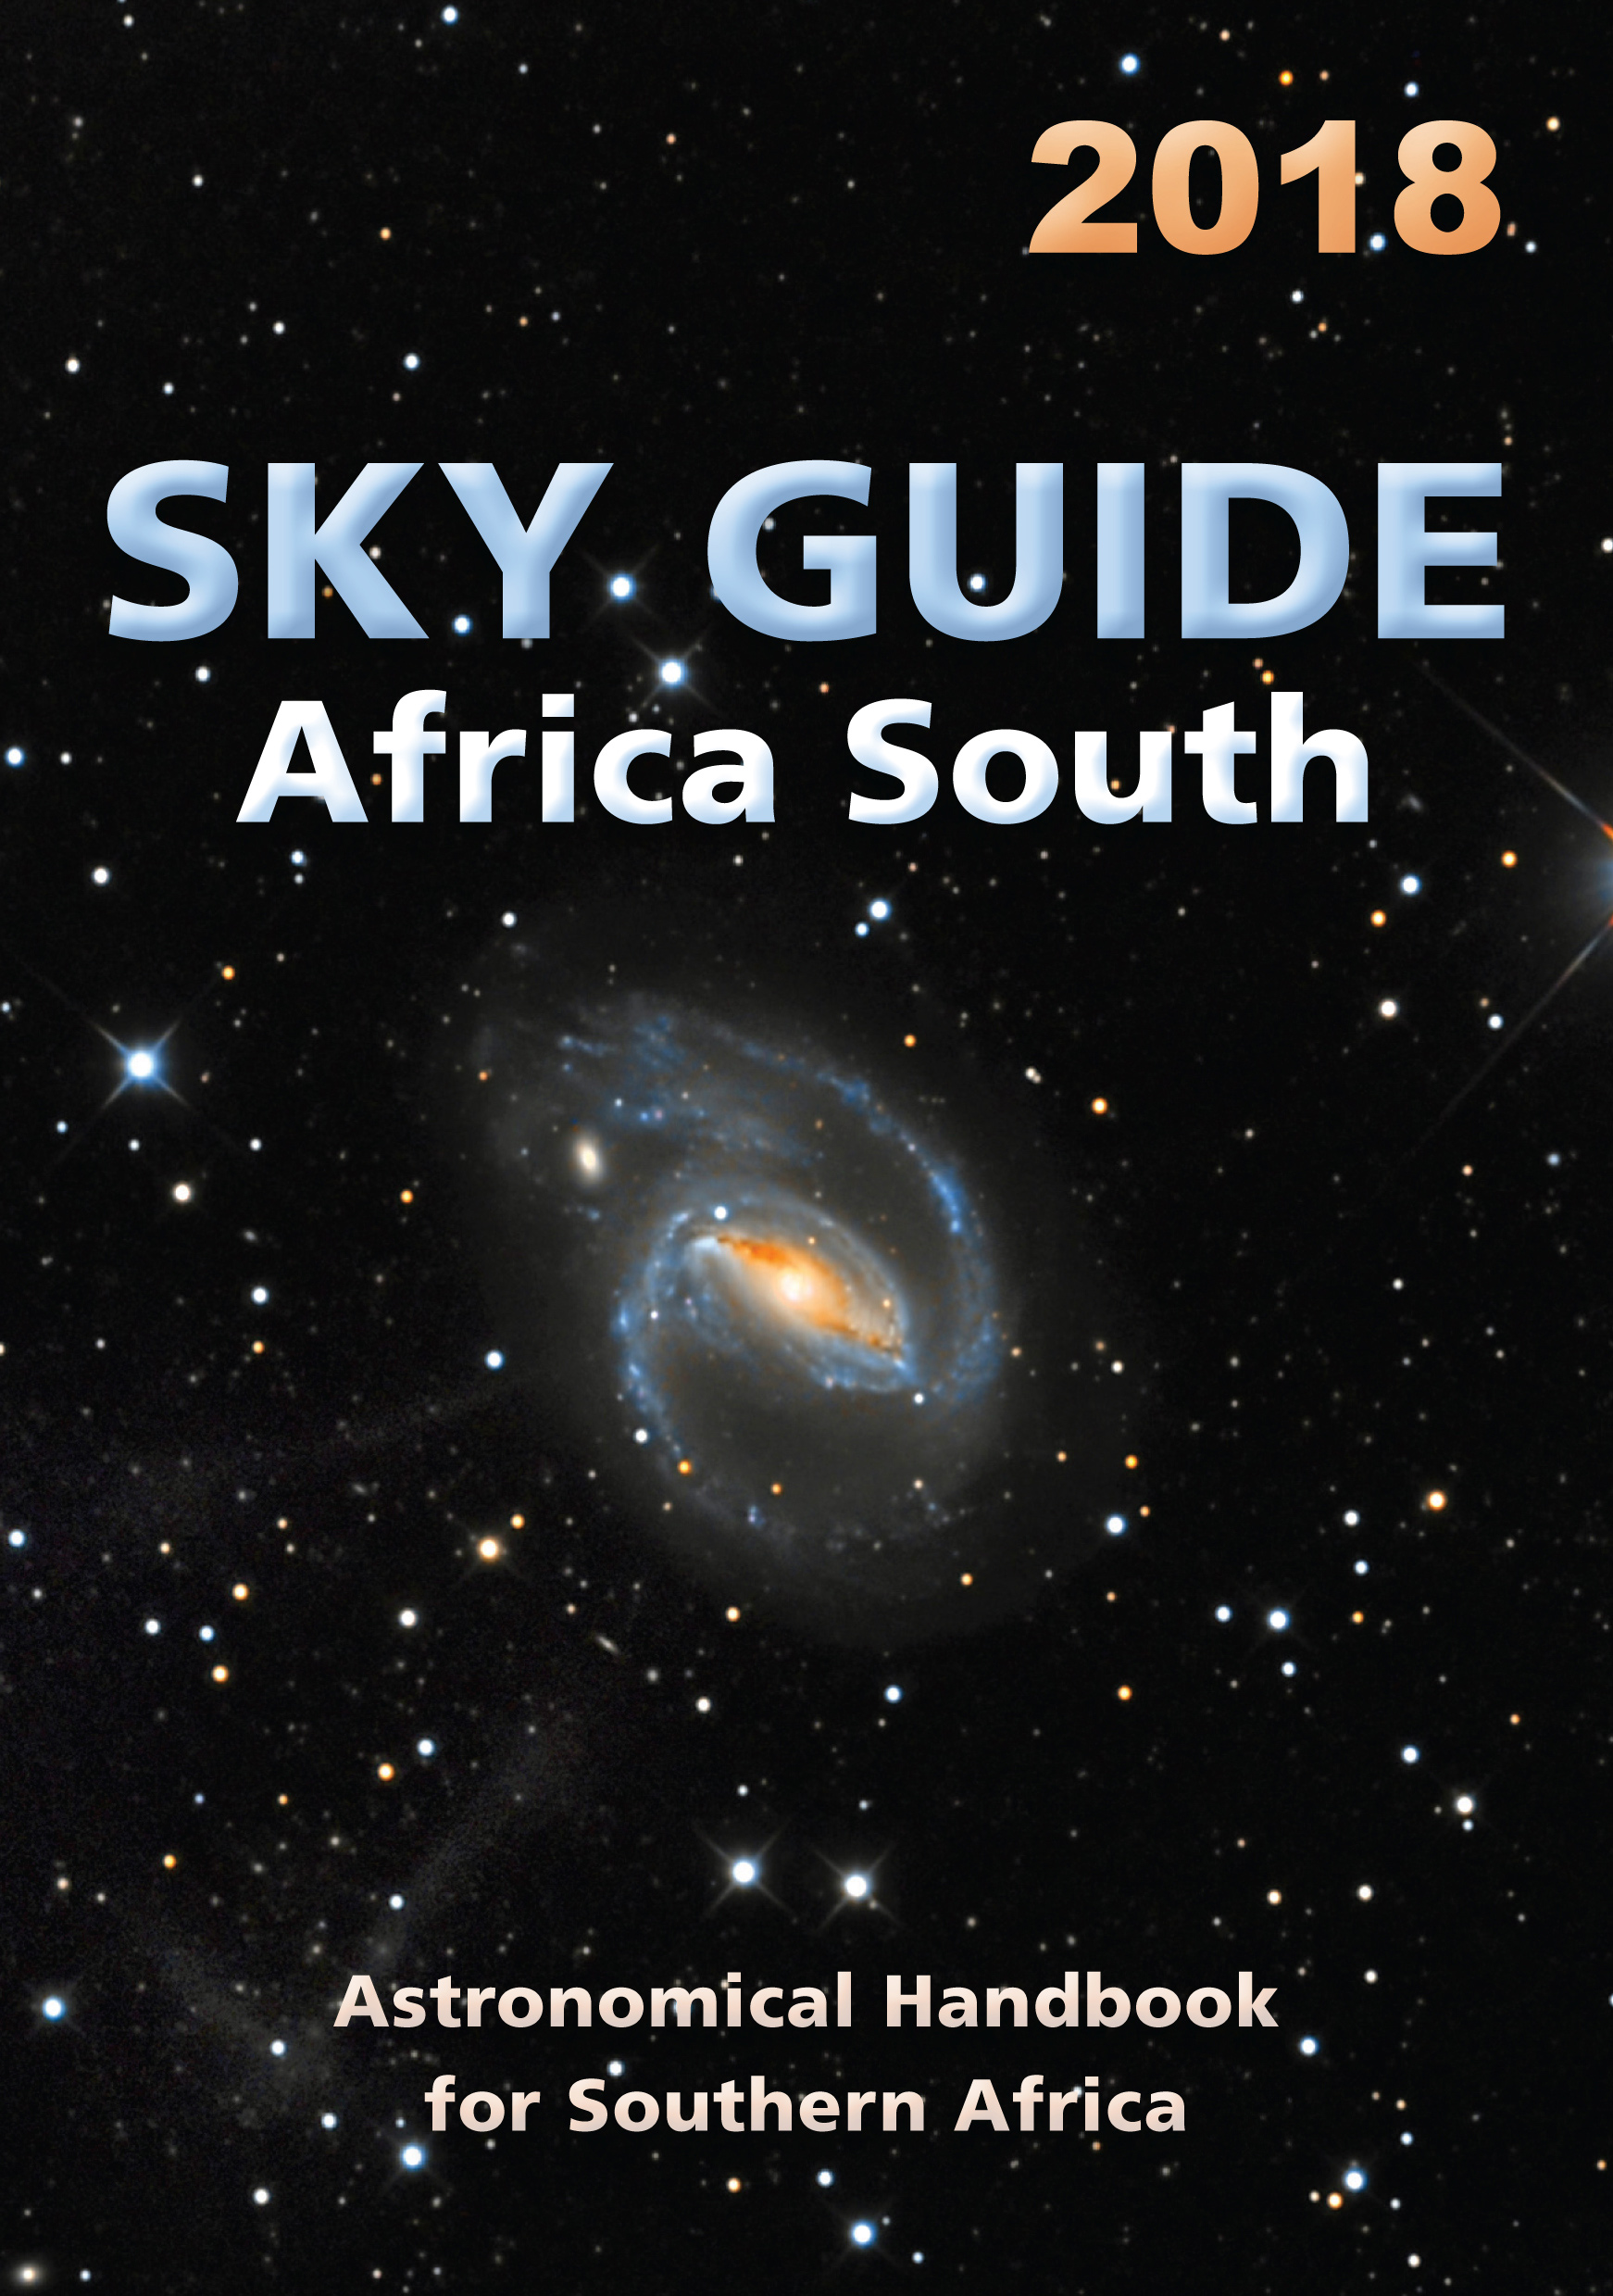 Sky Guide Africa South 2018